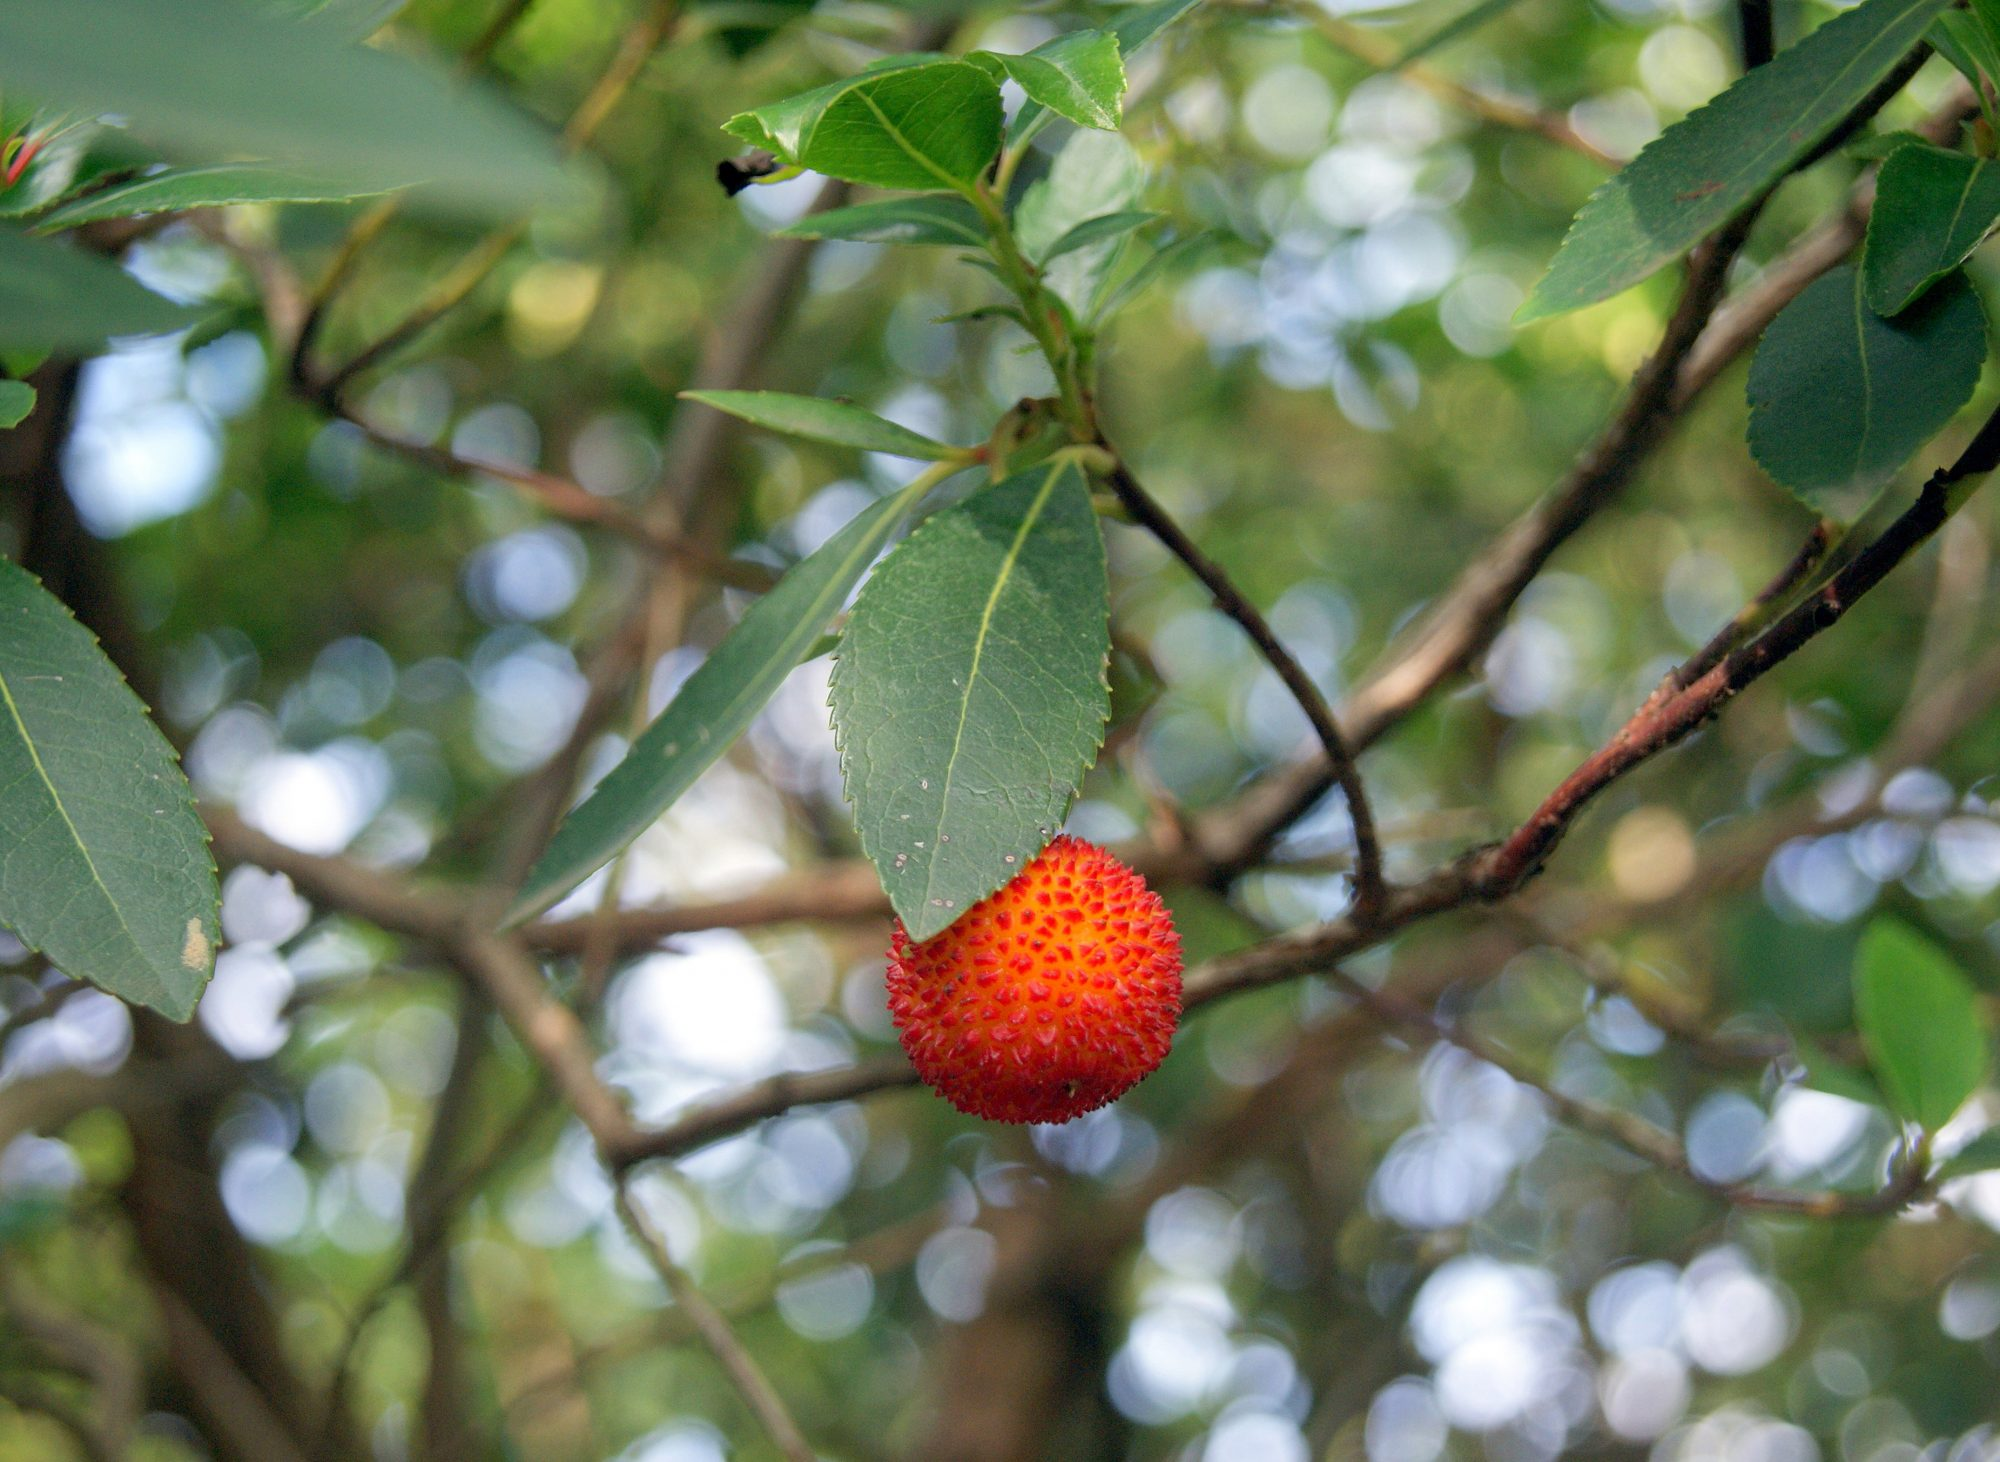 The strawberry tree or Arbutus unedo